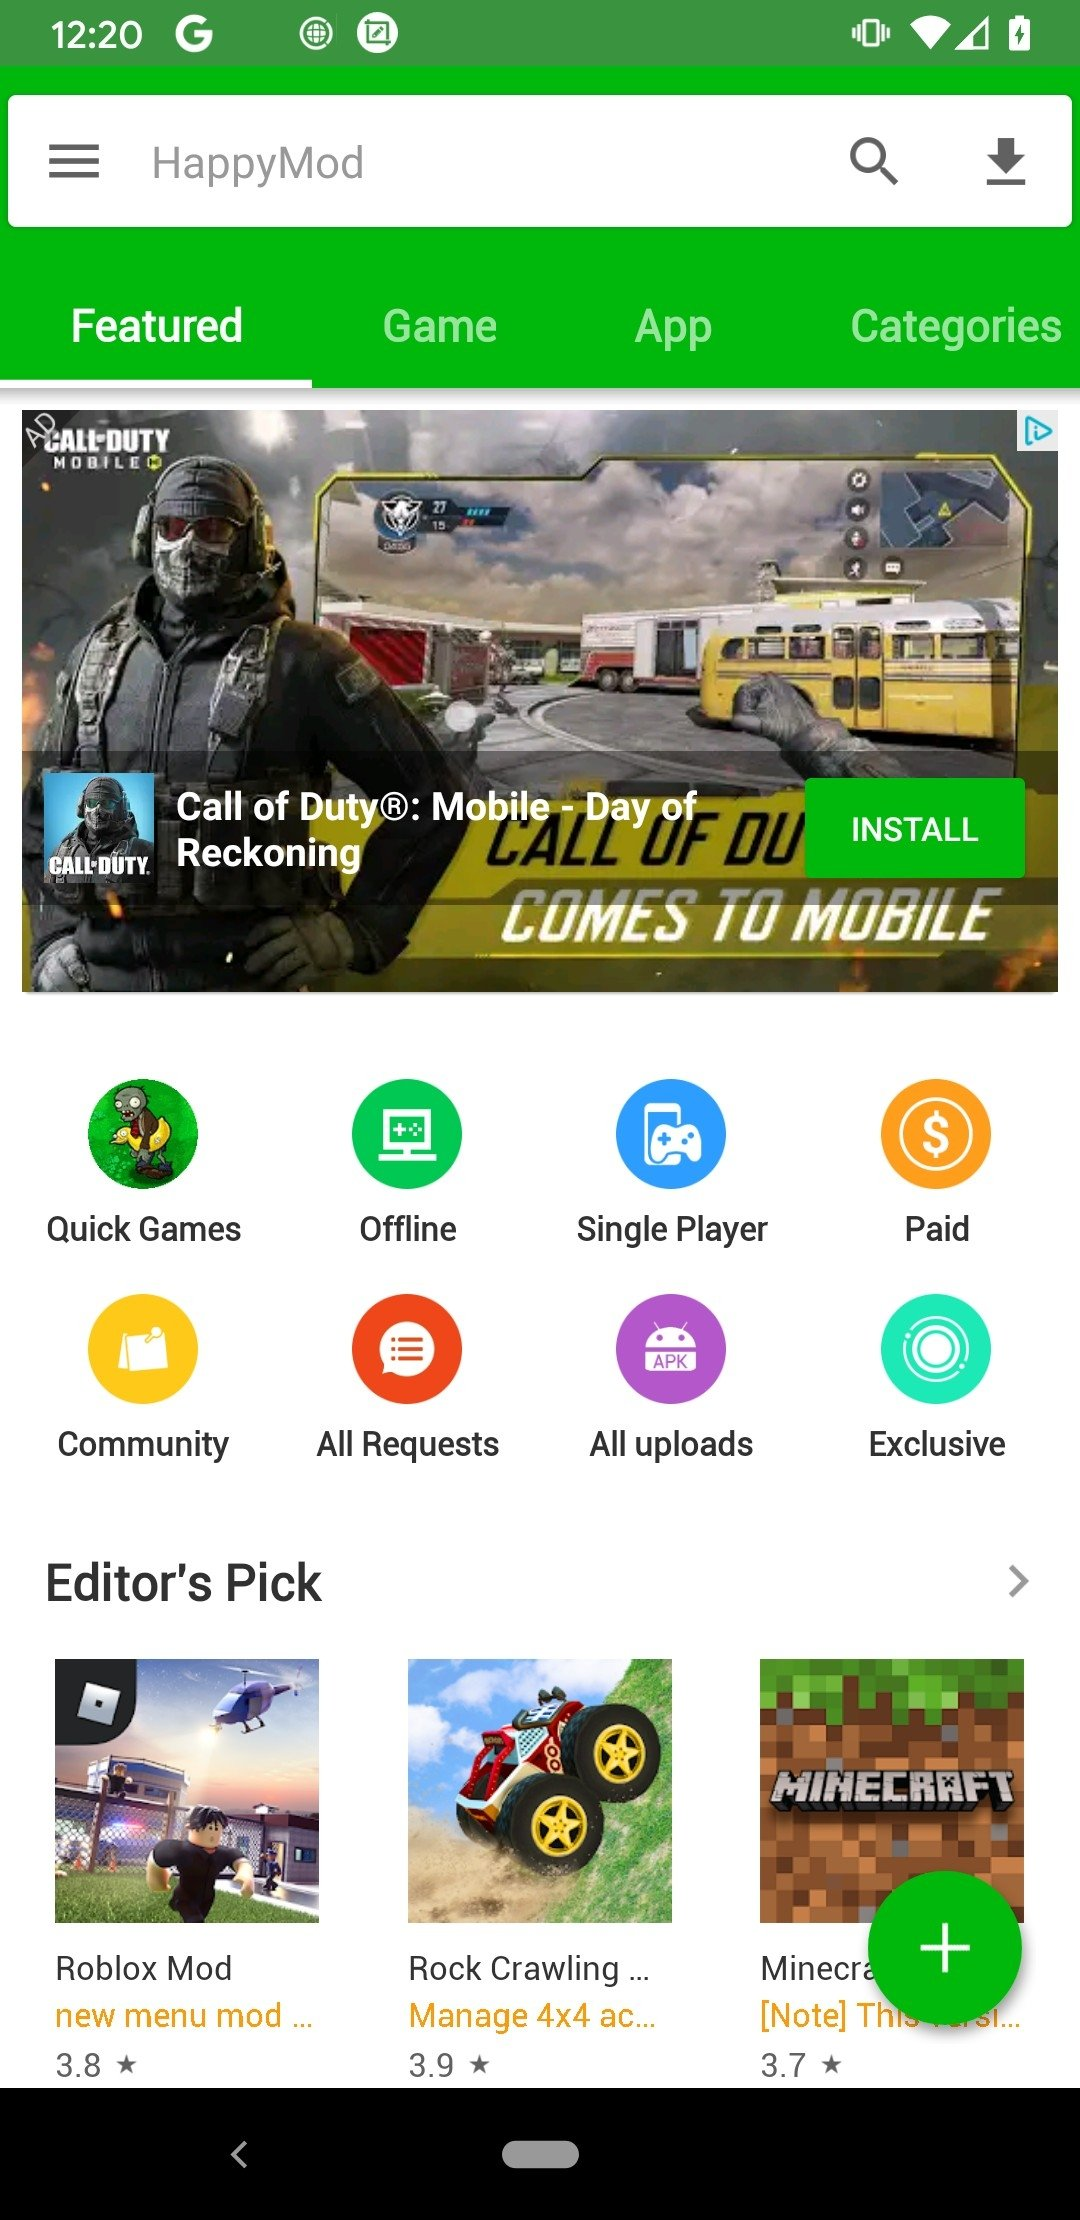 a157f4c5a9 HappyMod 2.2.2 - Download for Android APK Free